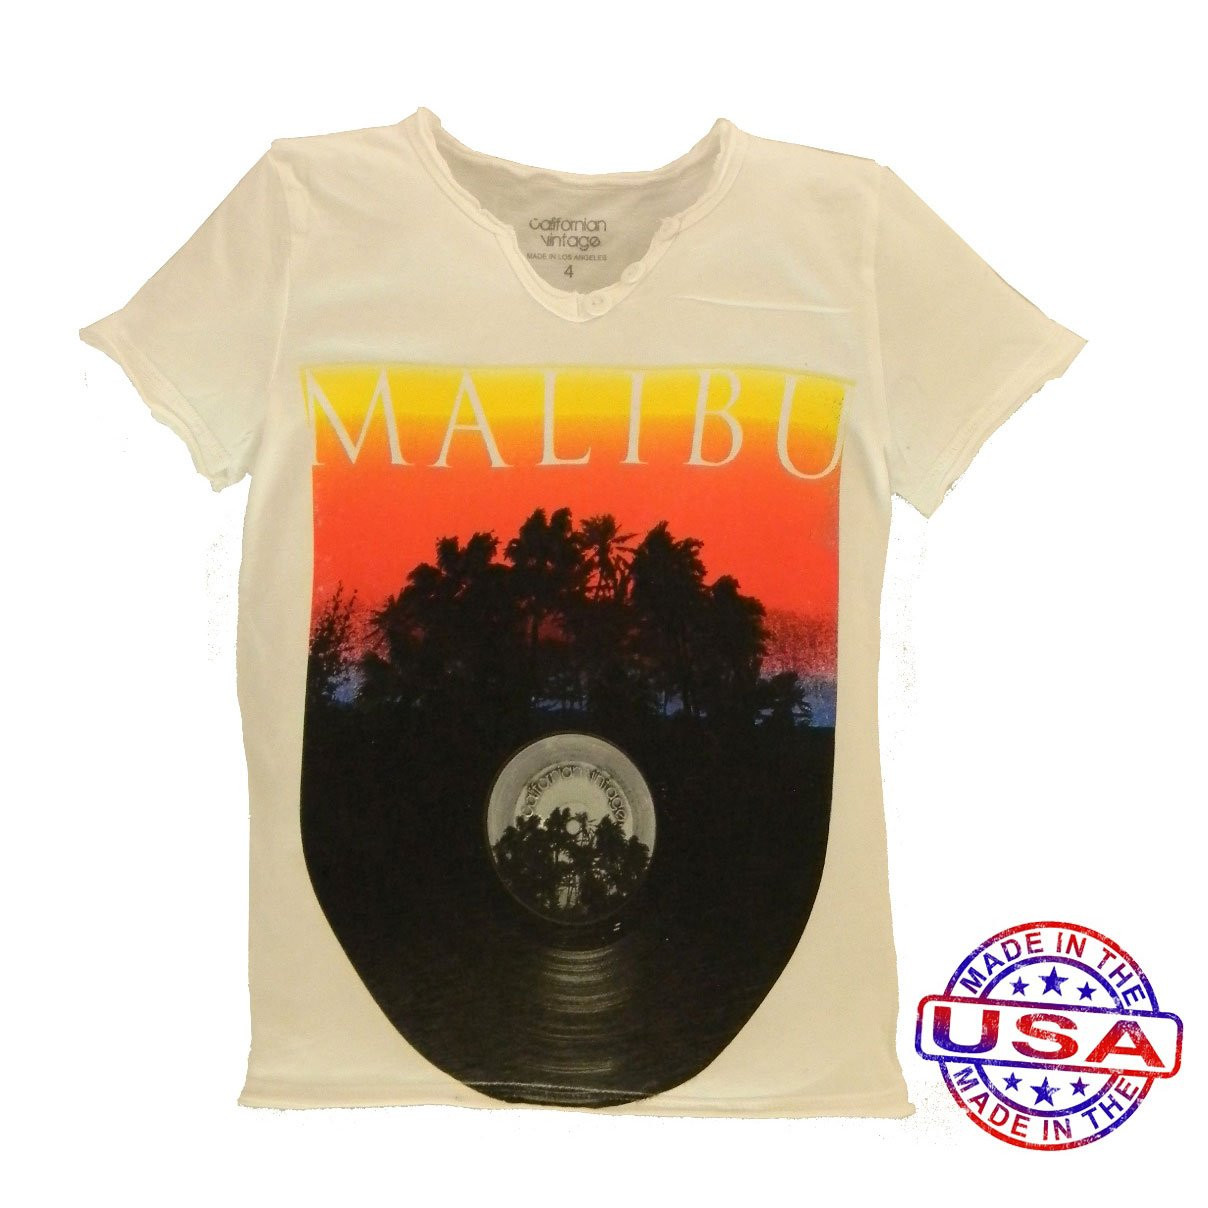 Boys' Malibu Record Shirt by Californian Vintage